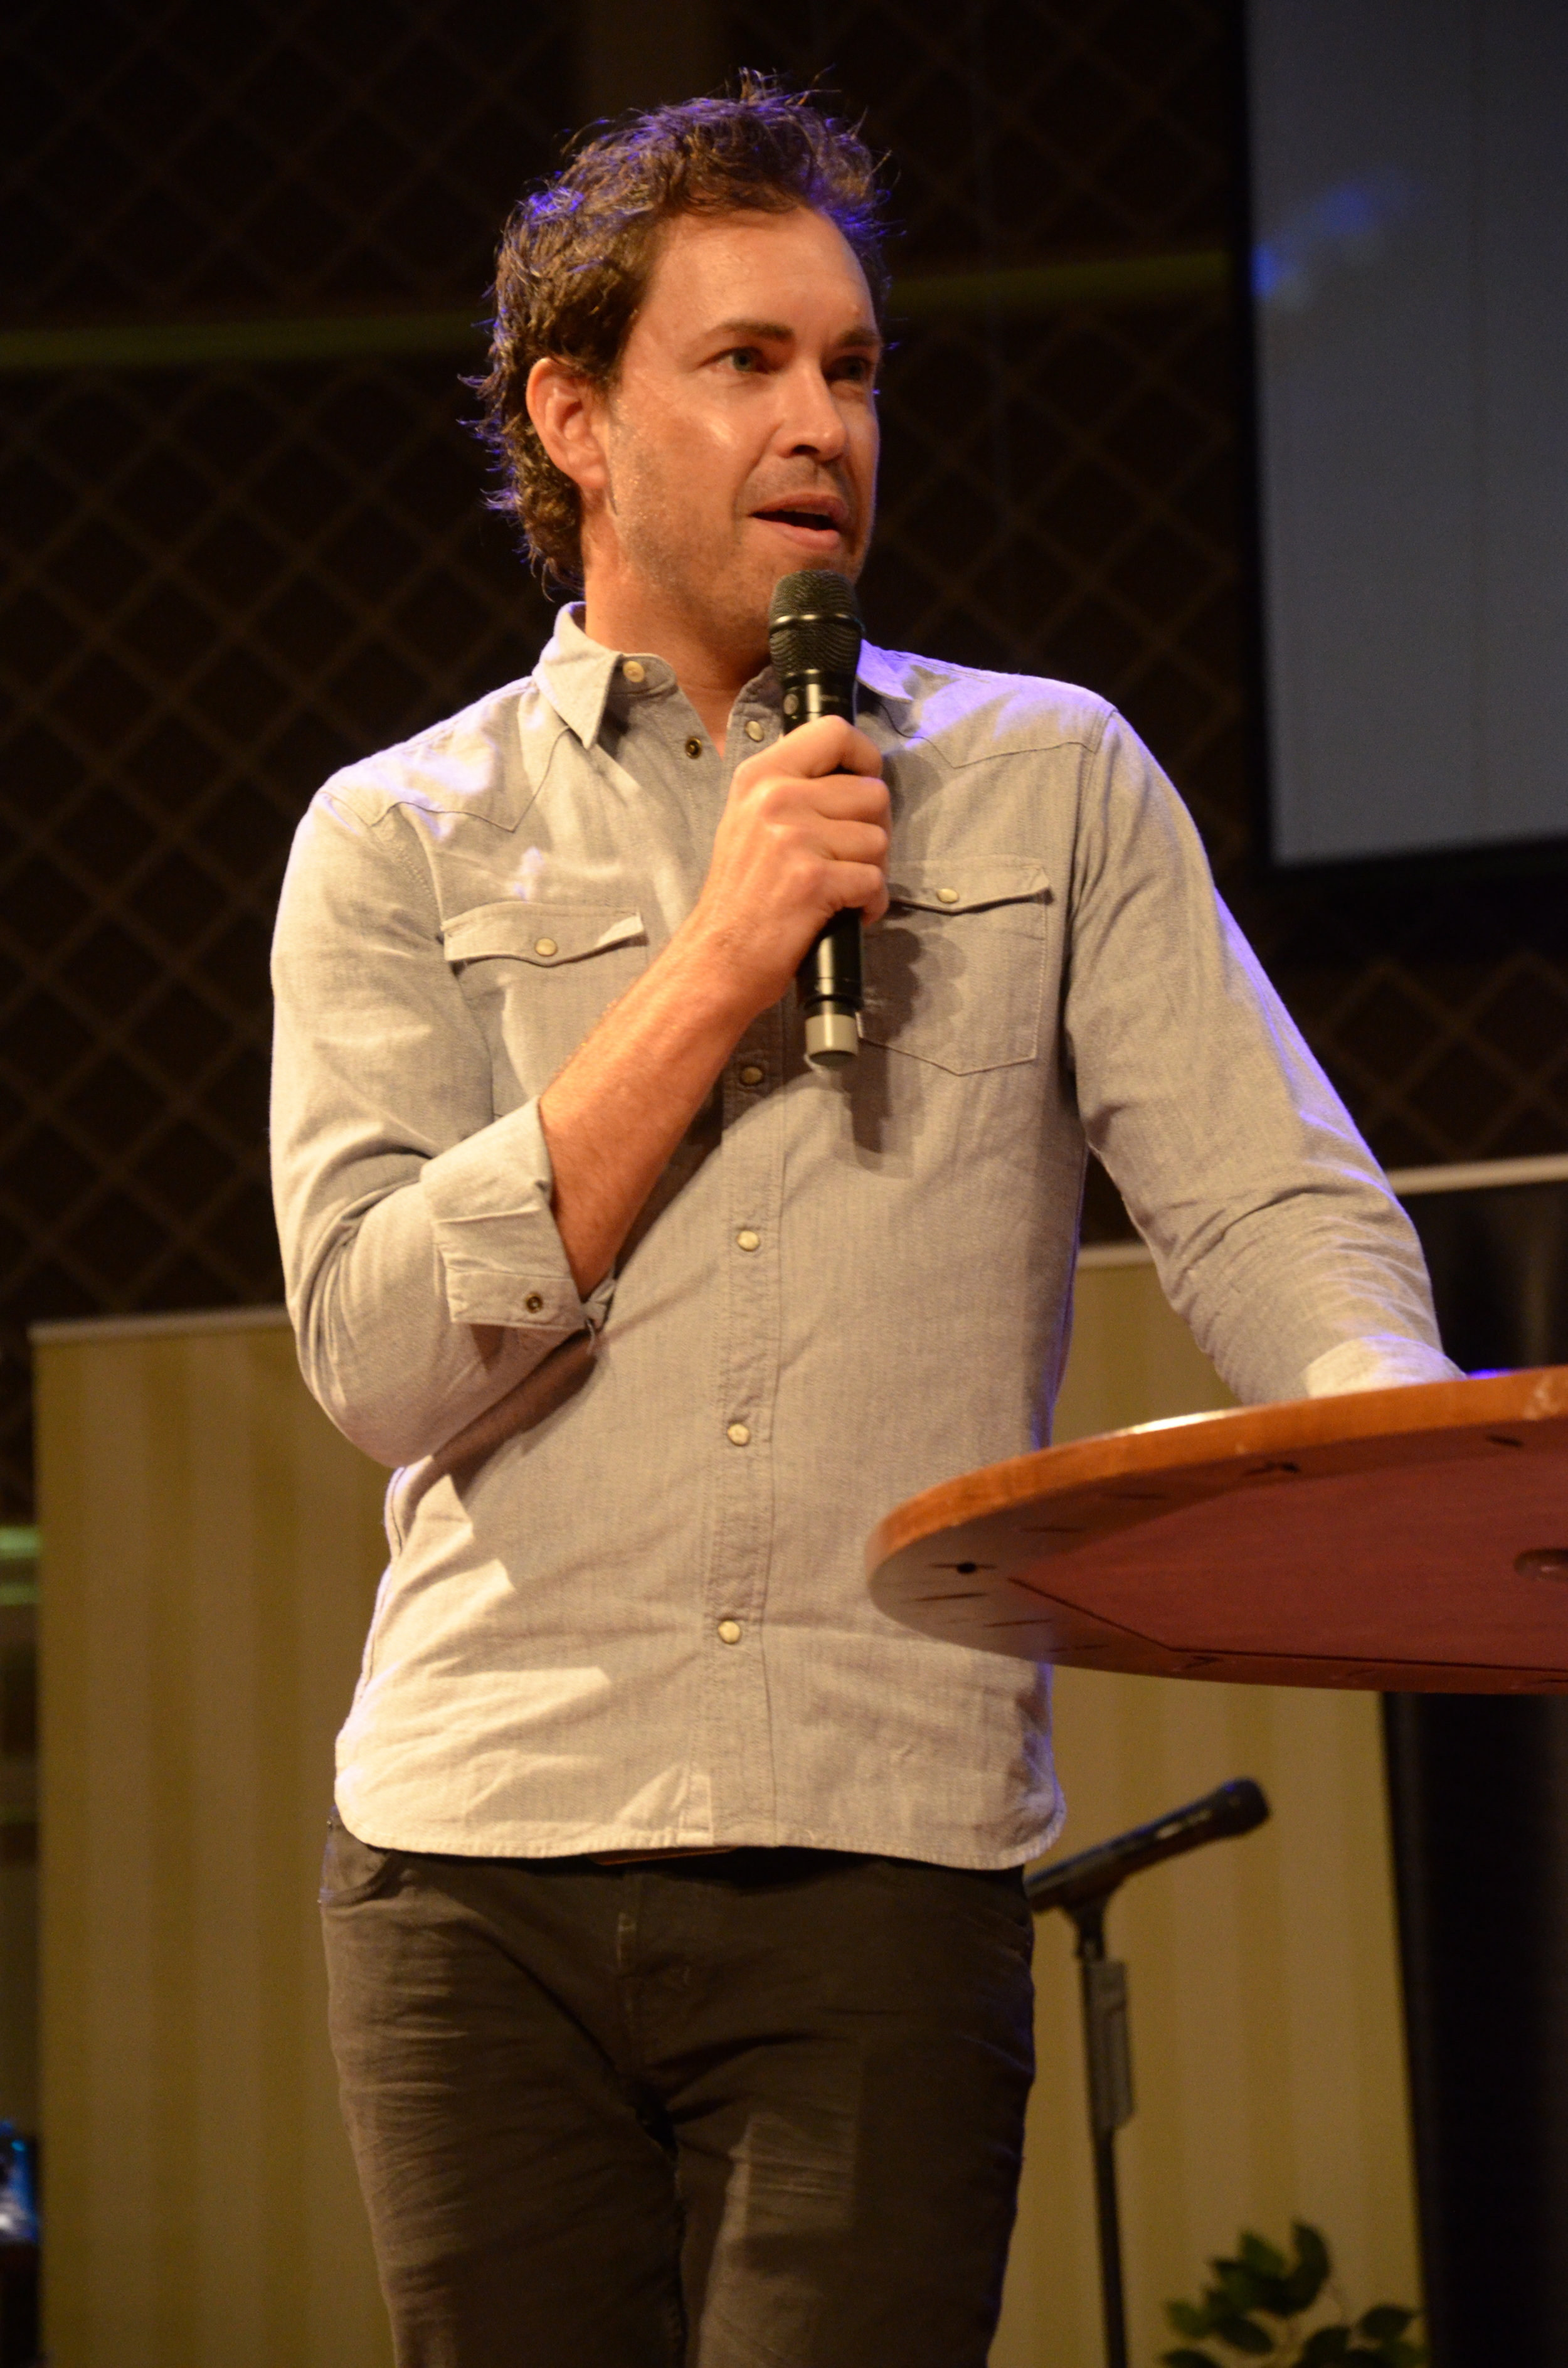 Sean McDowell speaks to attendees of the TNG conference, a place for churches to receive practical apologetics training, in Spartanburg September 5-6.